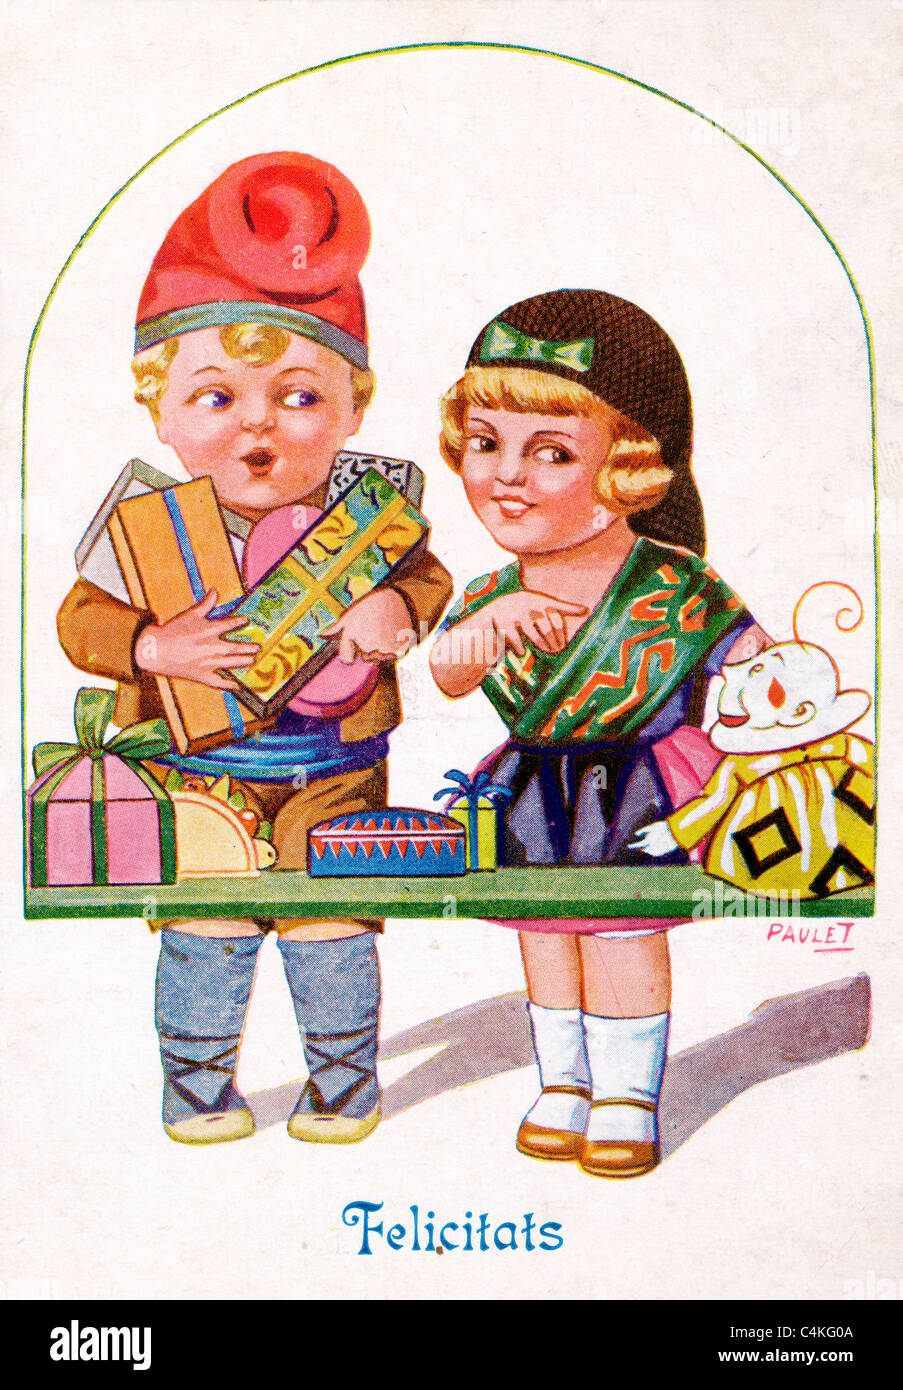 Spanish Felicitats Christmas greetings antique drawing of 1907 showing a girl and boy carrying presents - Stock Image